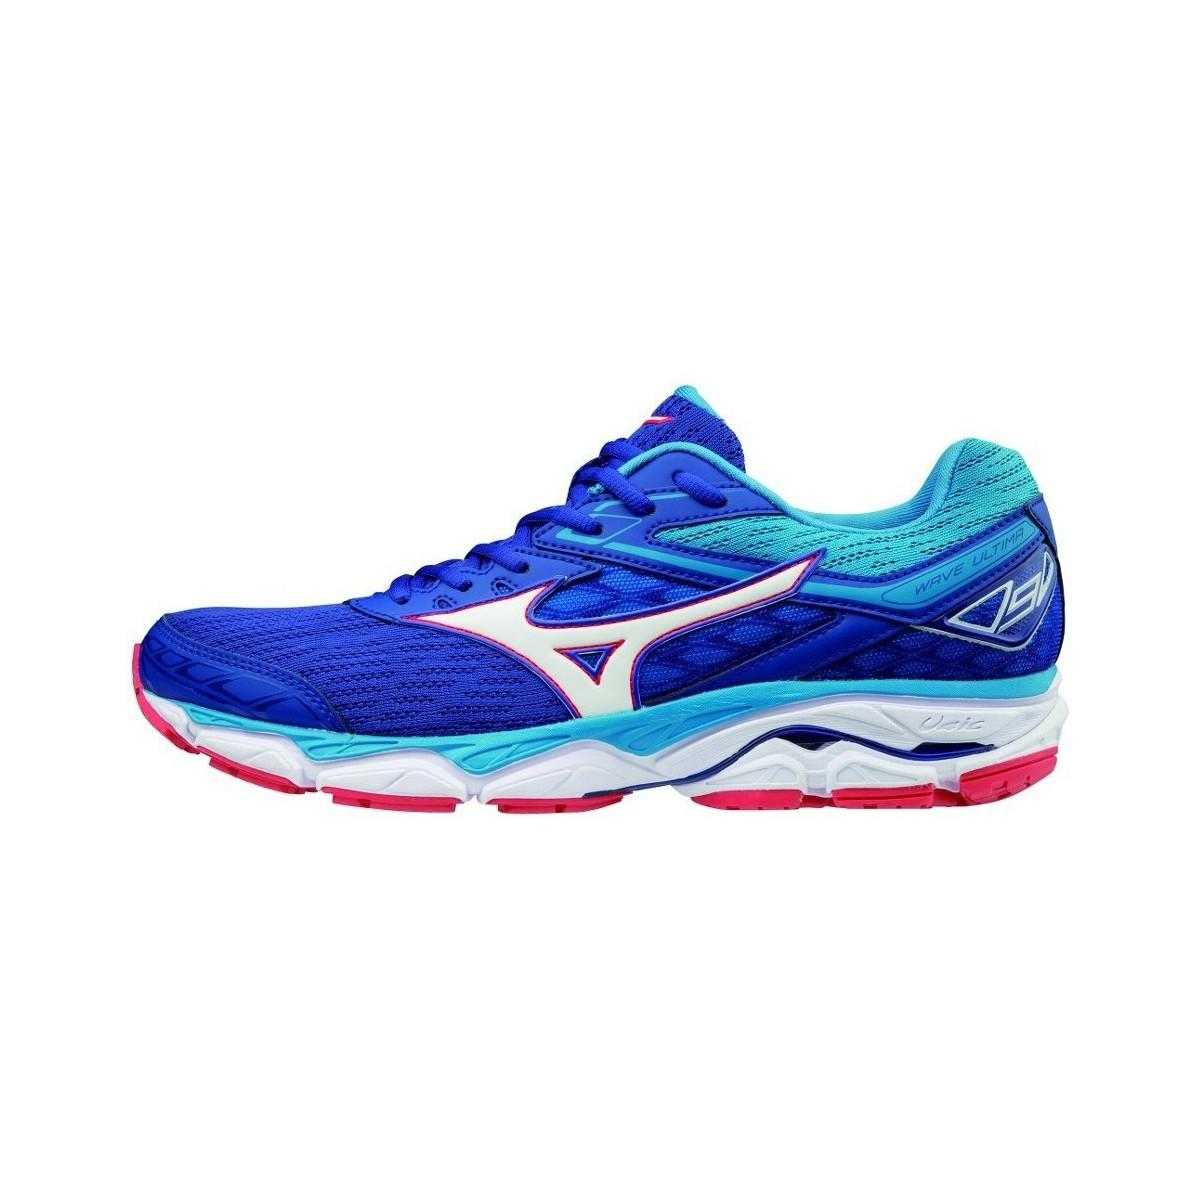 eb0afb1af570 Mizuno Wave Ultima 9 Men's Shoes (trainers) In Multicolour in Blue ...